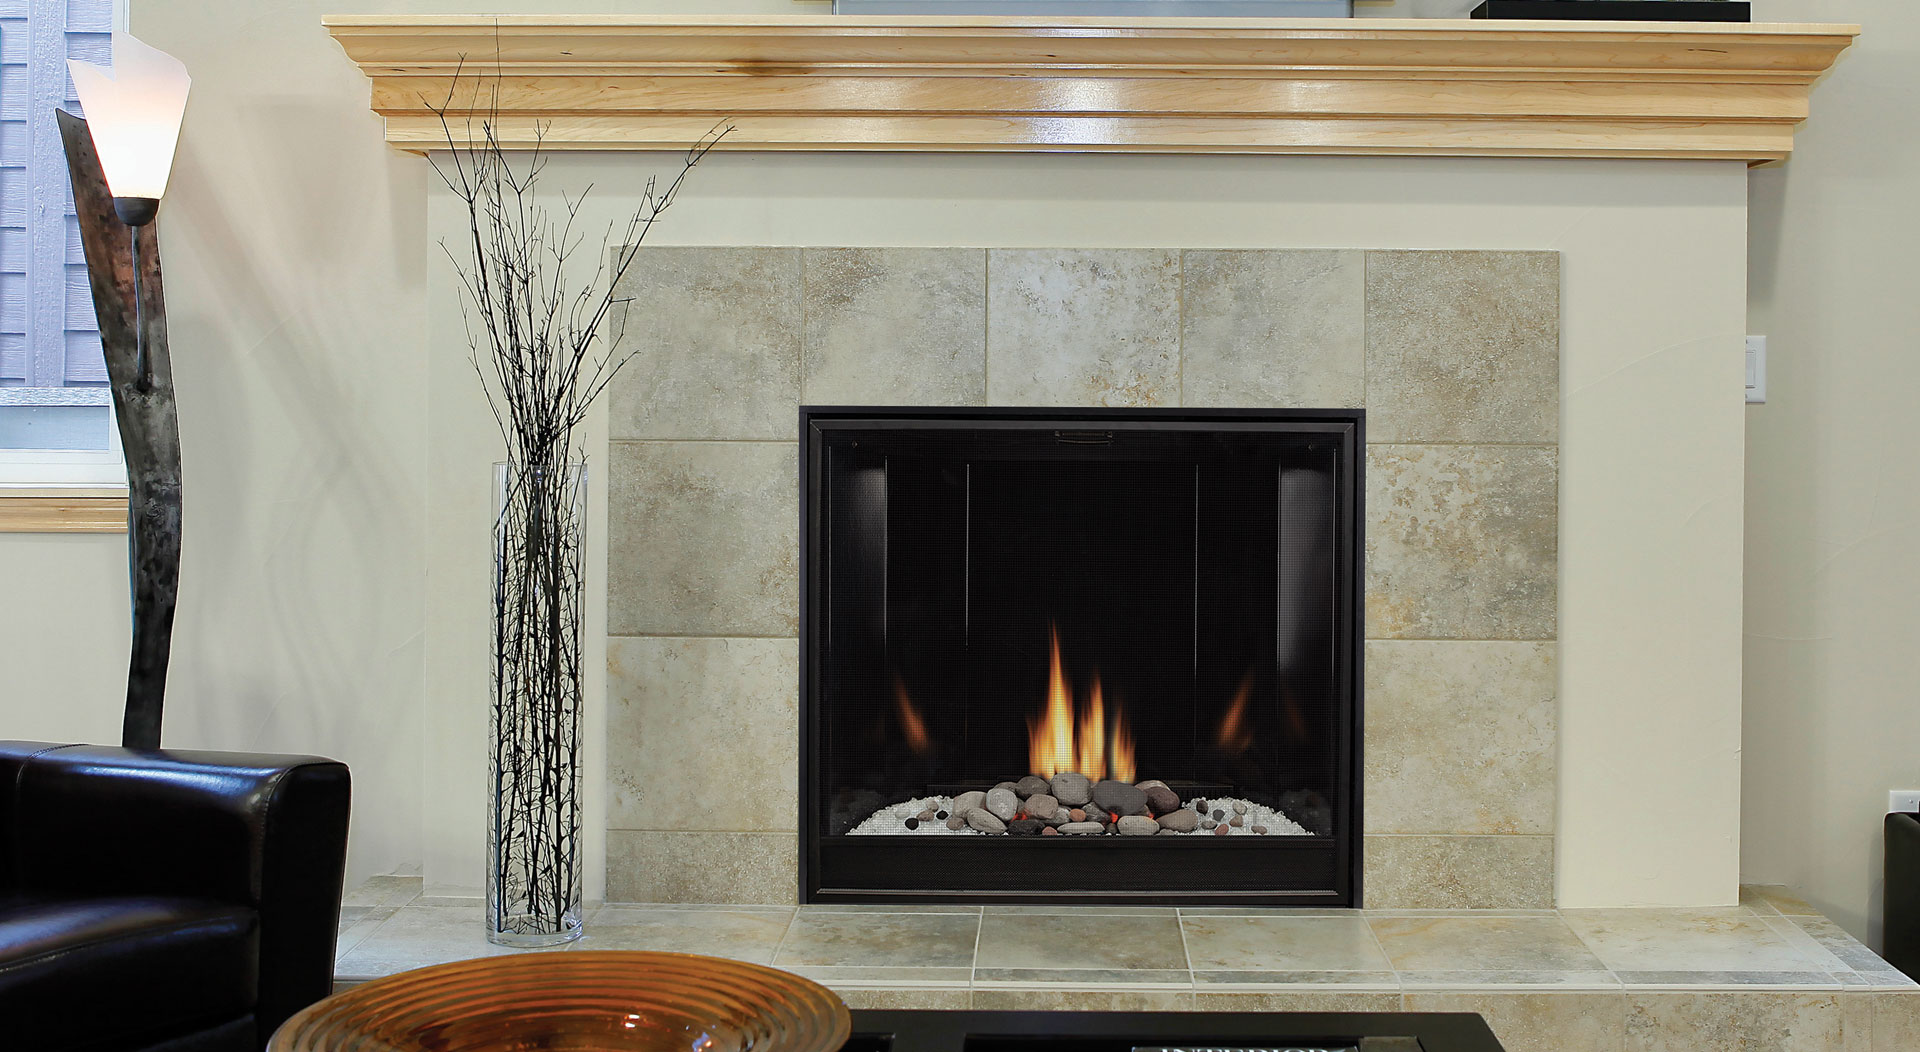 center fireplace new media legends furniture item number castle znca boulevard products